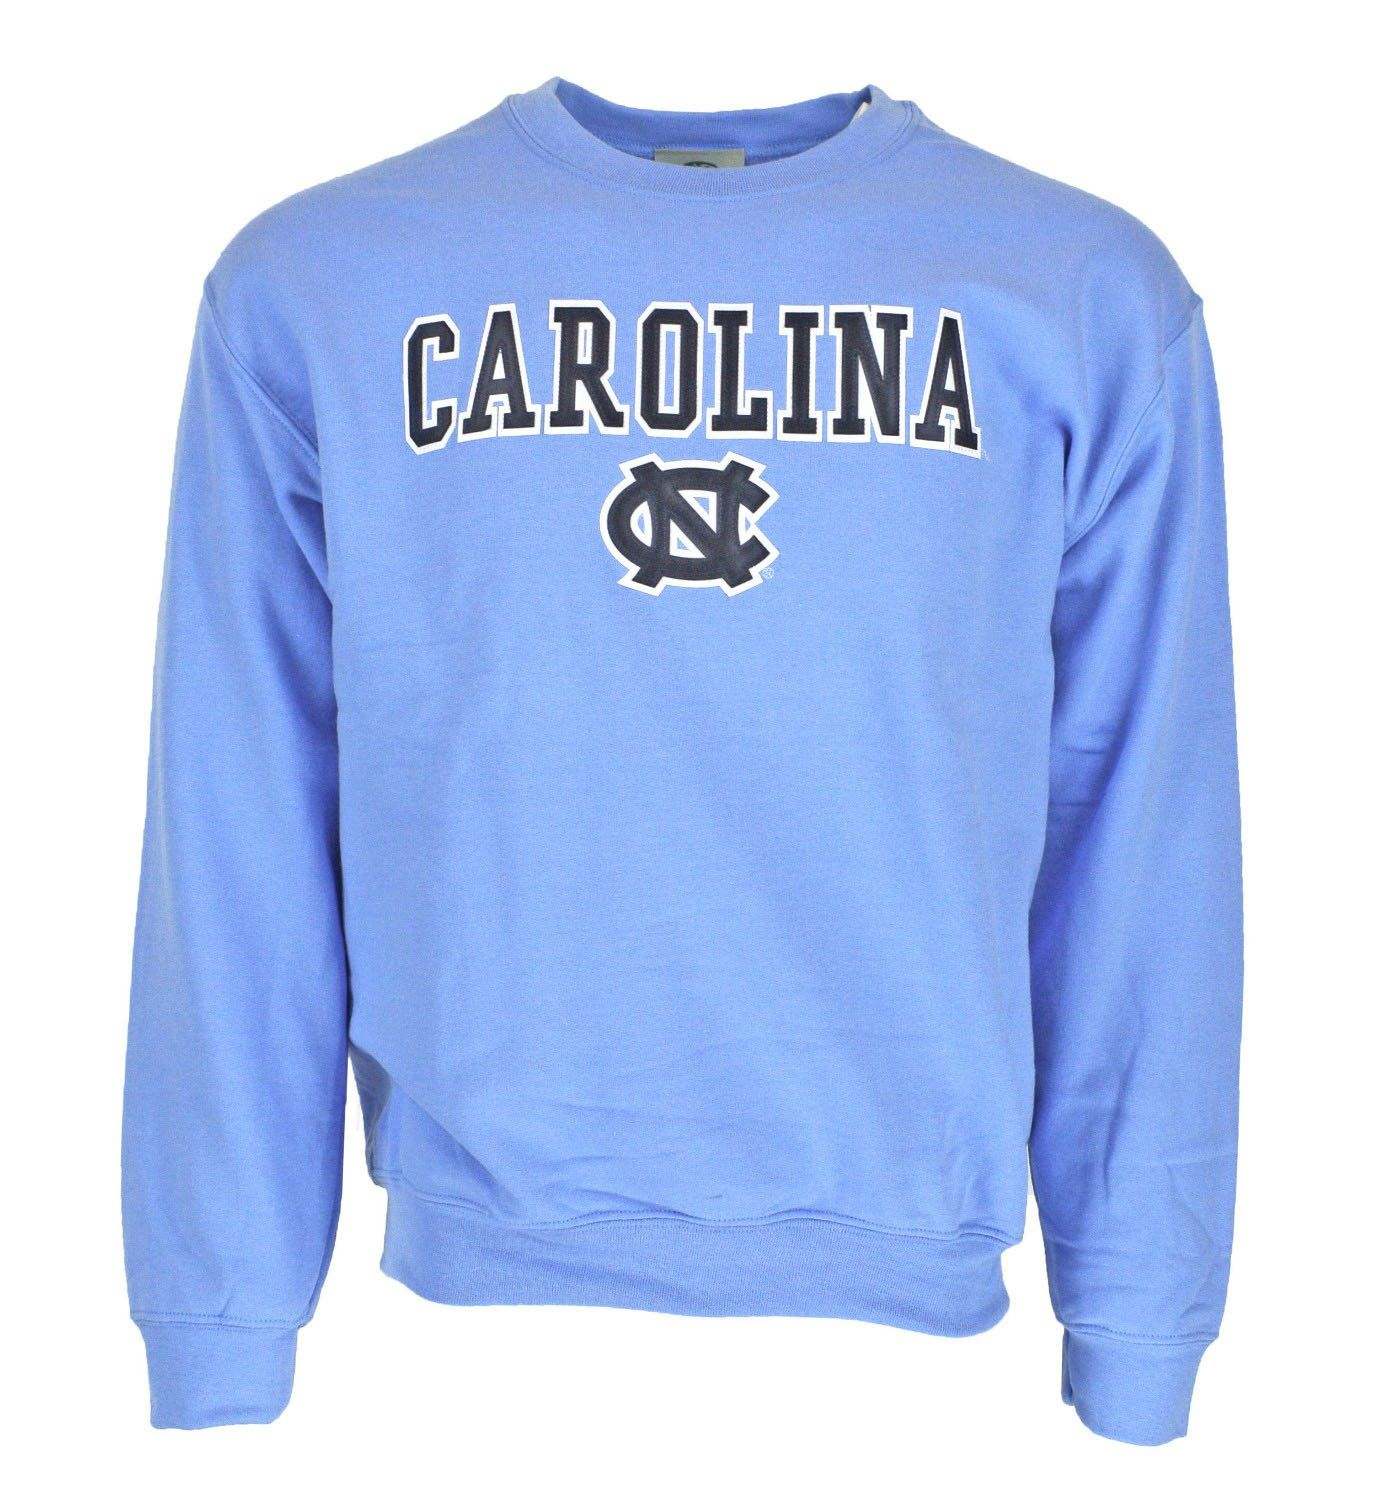 6fbbb714 Get your classic North Carolina souvenir crew neck sweatshirt whether you  are a UNC Tar Heels fan, state visitor, or you call NC home!